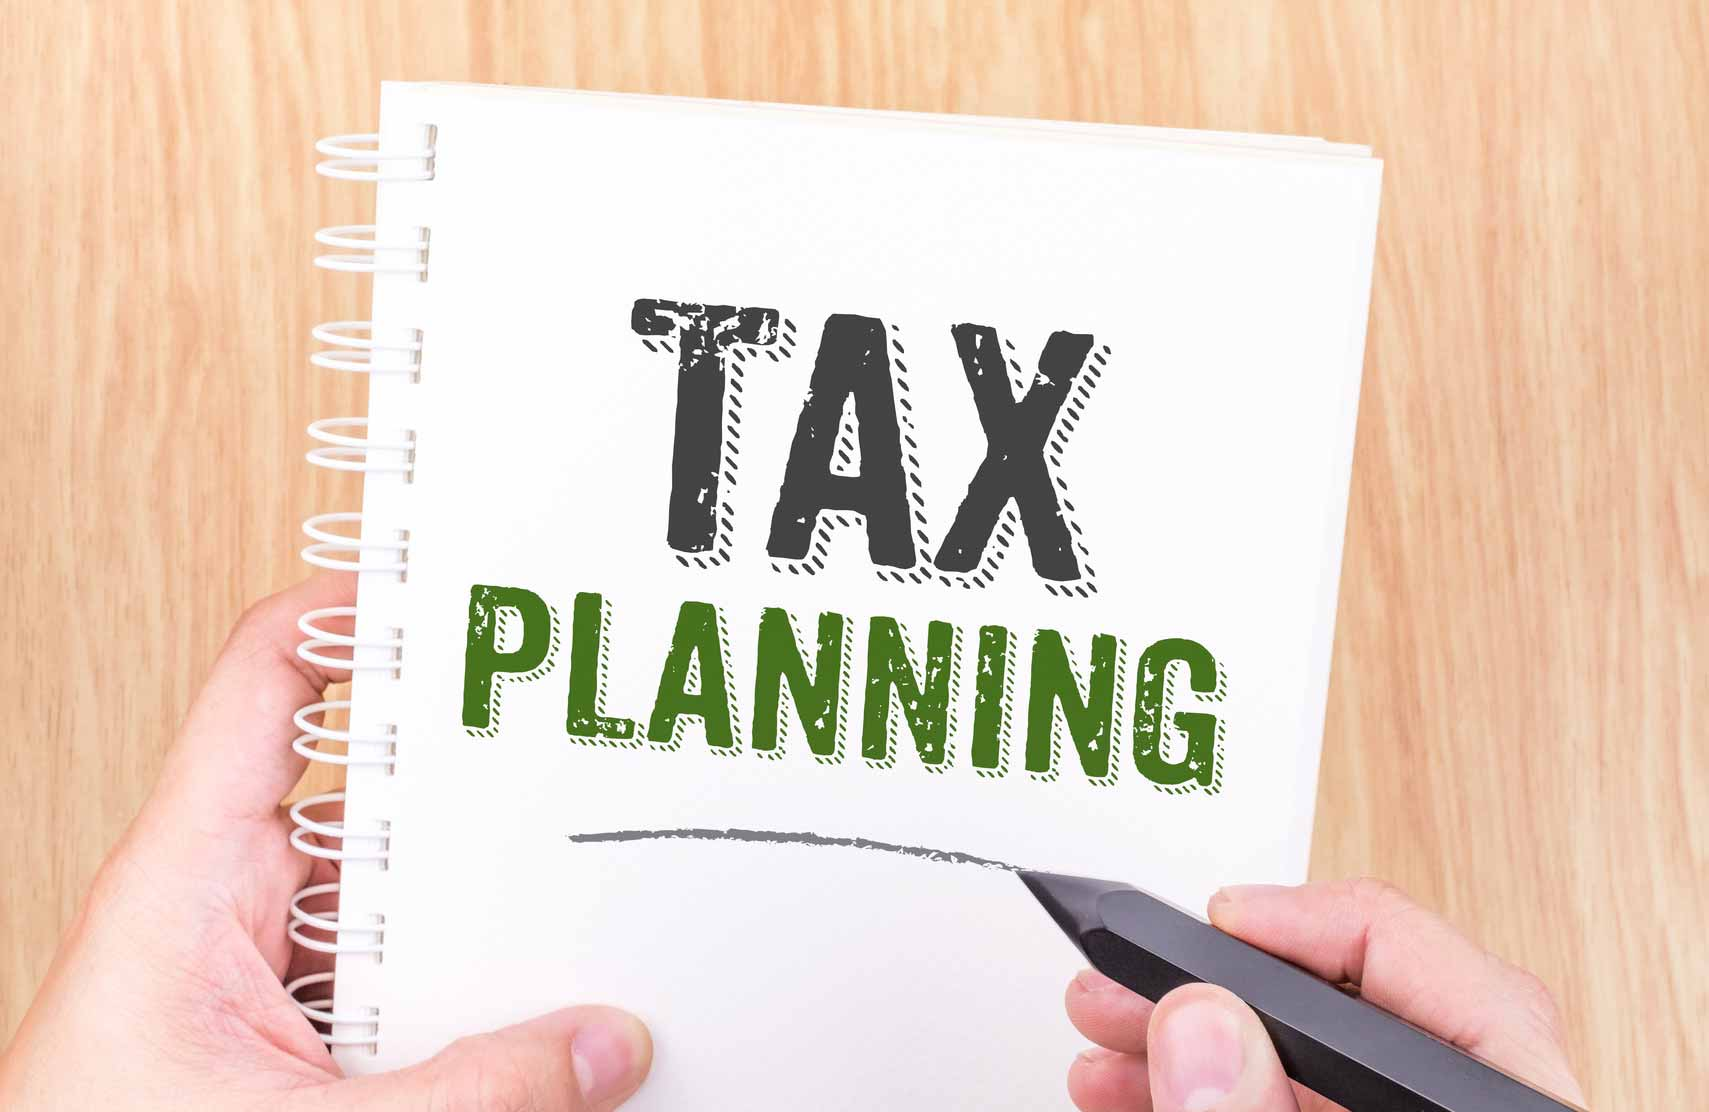 Proposed Changes To Small Business Tax Planning